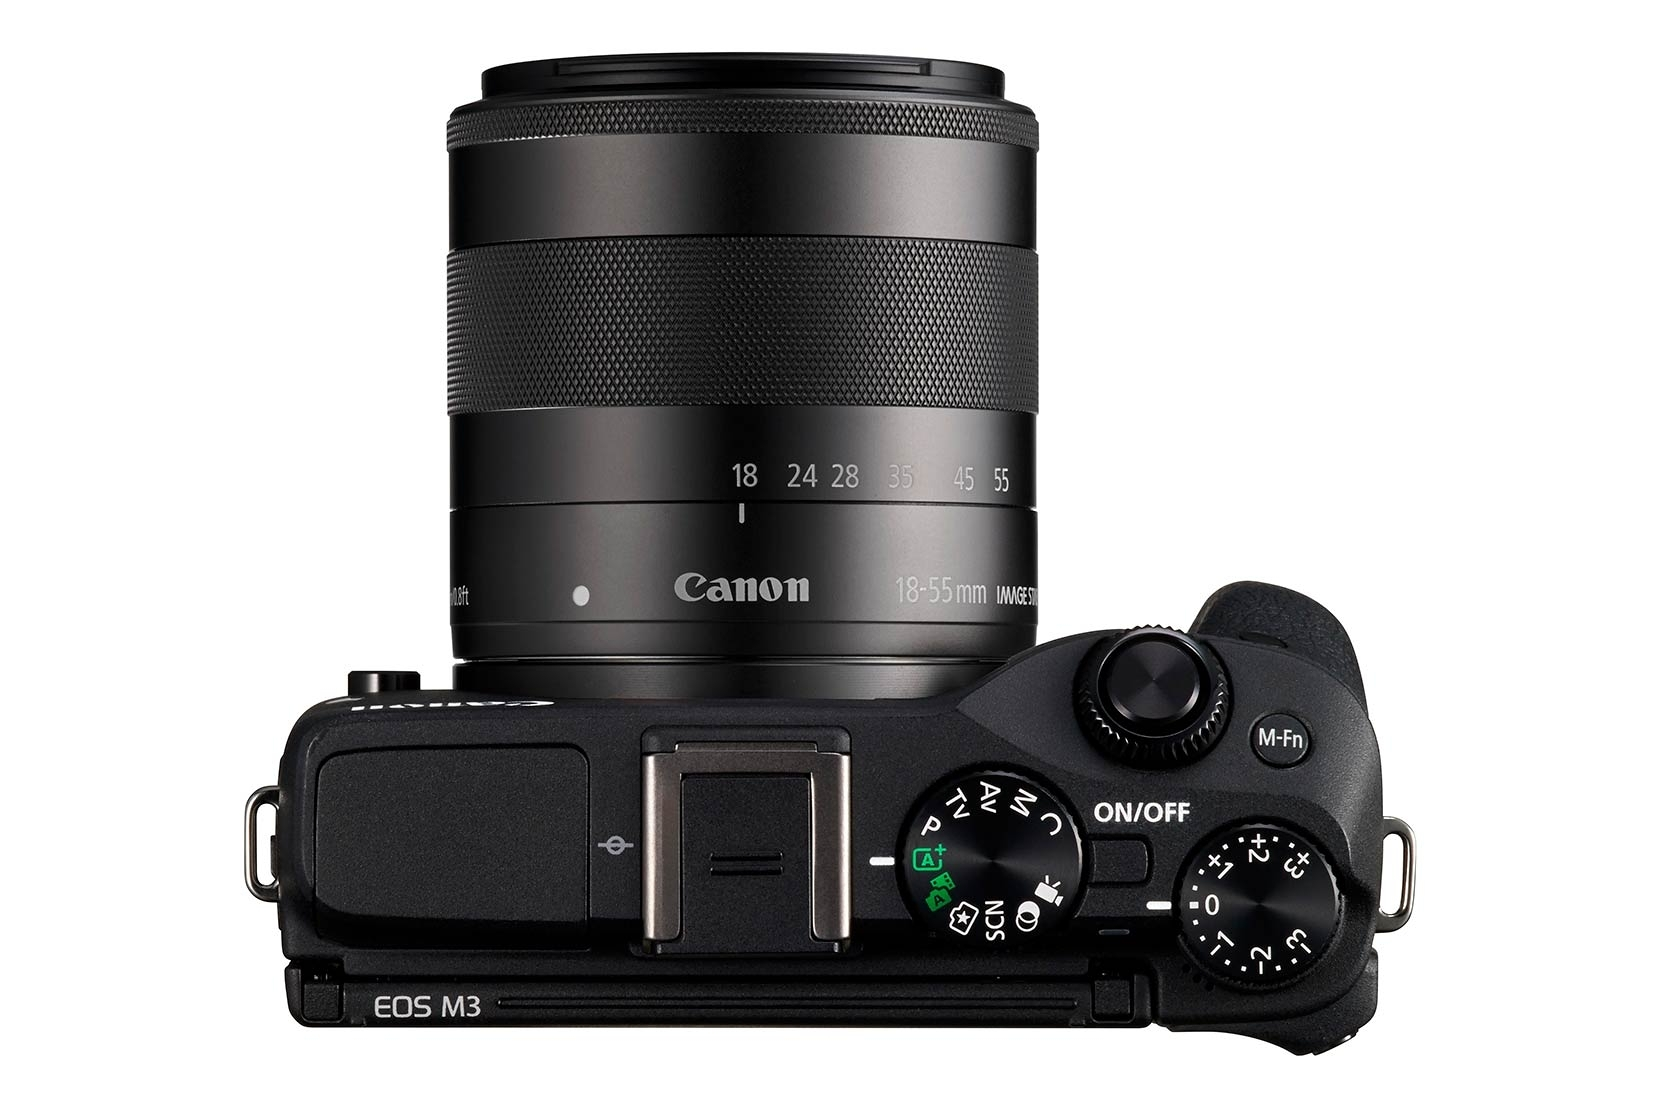 The Canon EOS M3 from above - the flash is concealed under the door on the top left